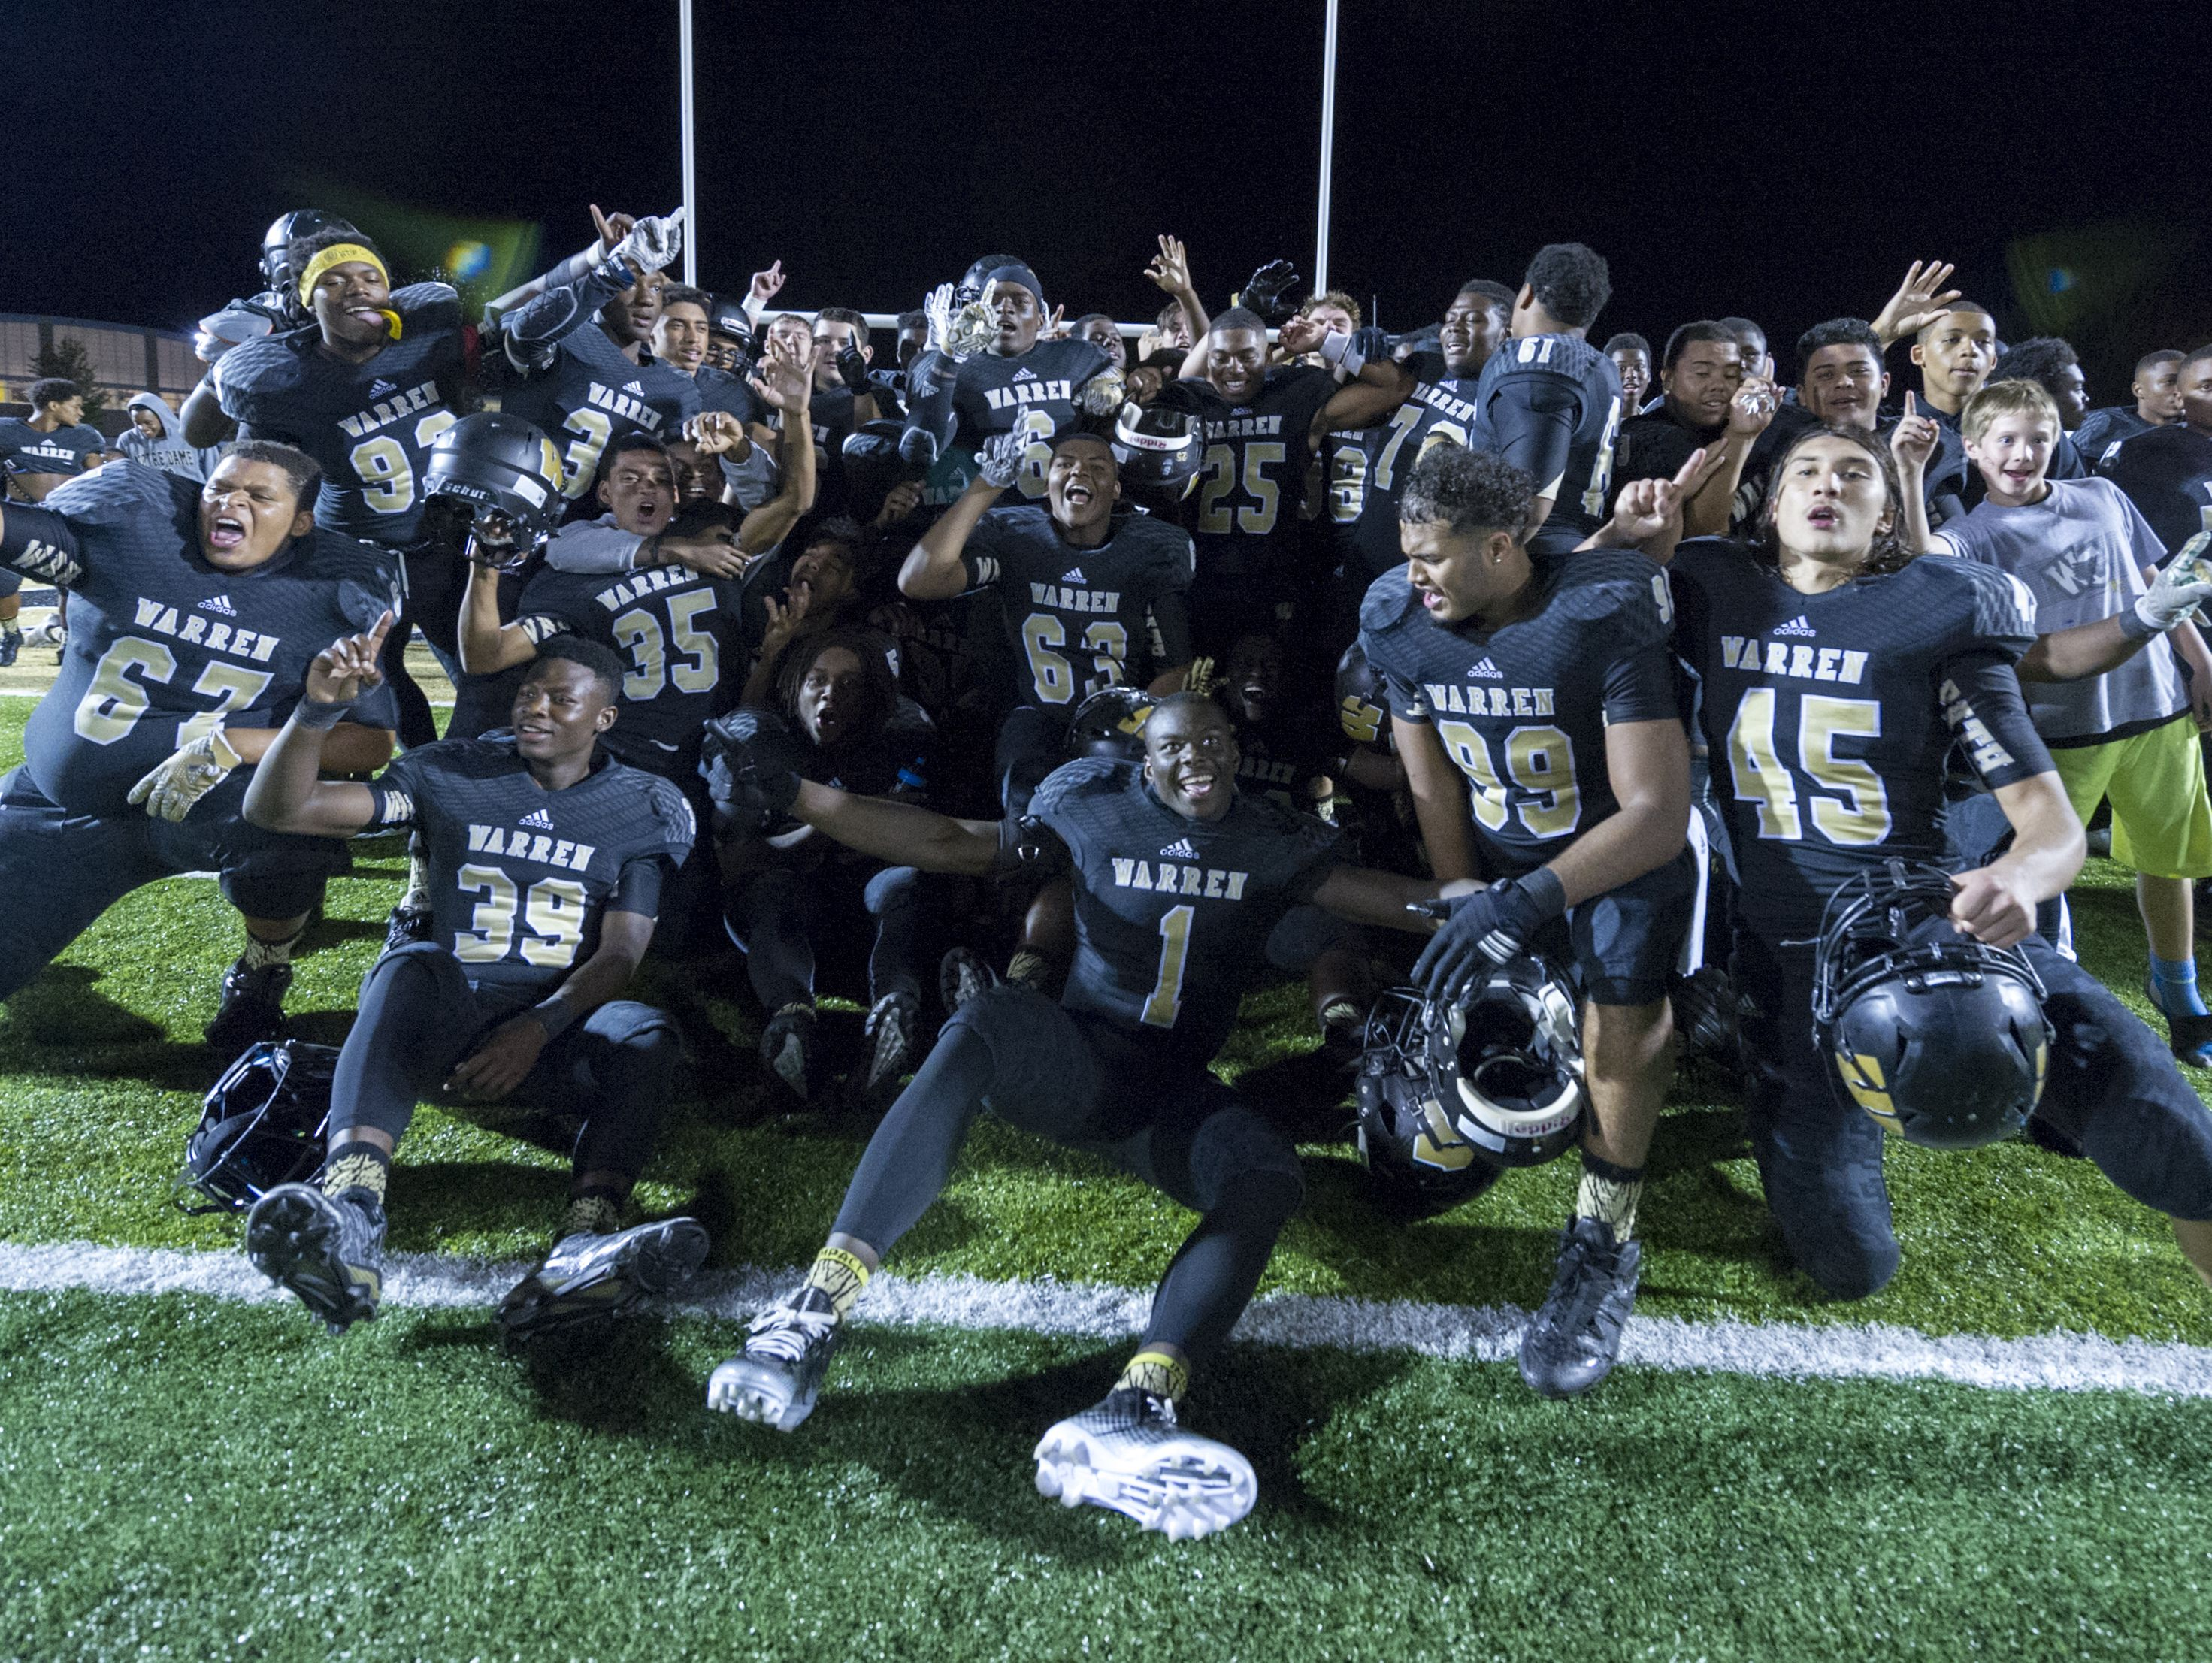 Warren Central players celebrated the school's 500th all-time win earlier this season. Will they celebrate a state title?